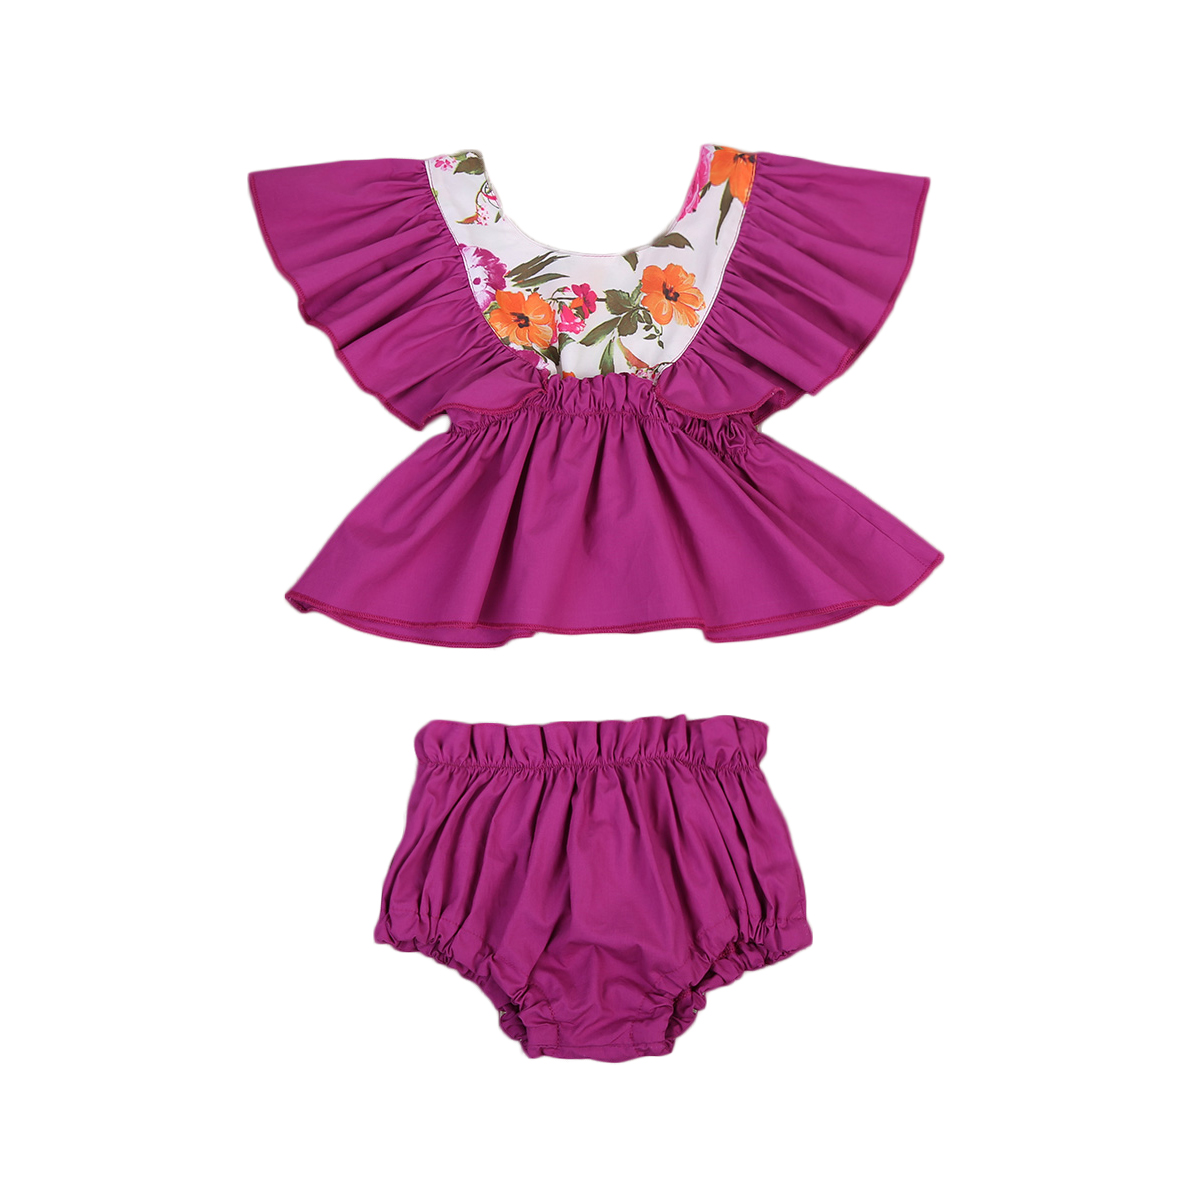 New Style Newborn Baby Girls Clothes Summer Floral Short Sleeve Tops Vest Ruffle Shorts Clothes Outfits Sunsuit